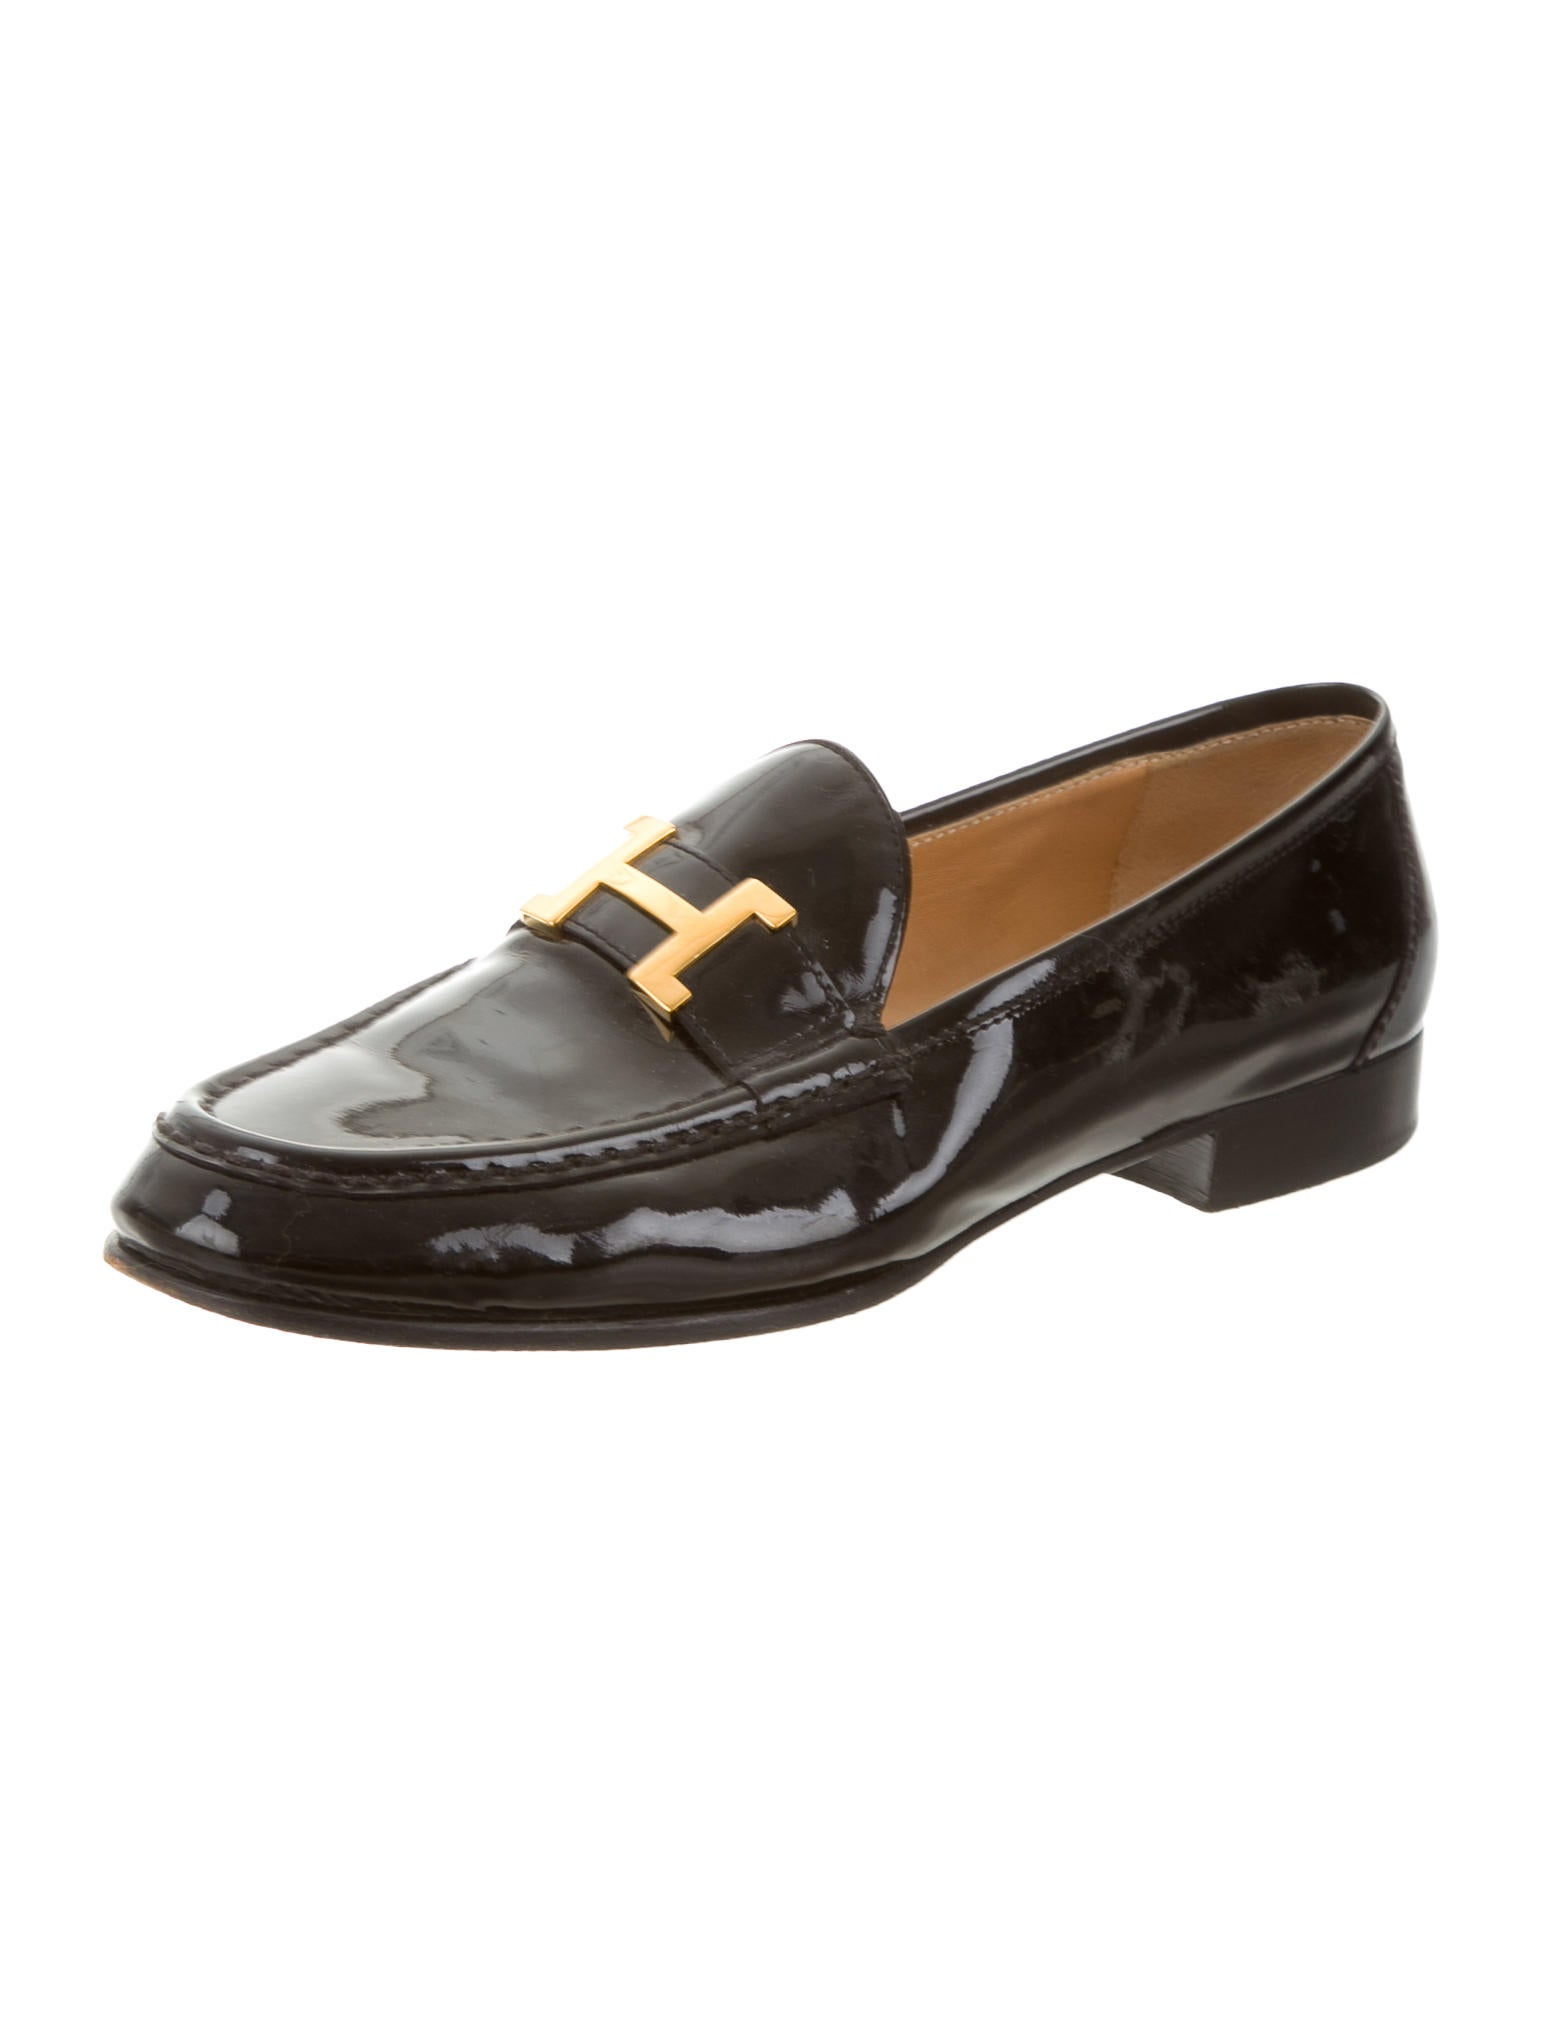 Hermu00e8s Patent Leather Logo Loafers - Shoes - HER74736 ...